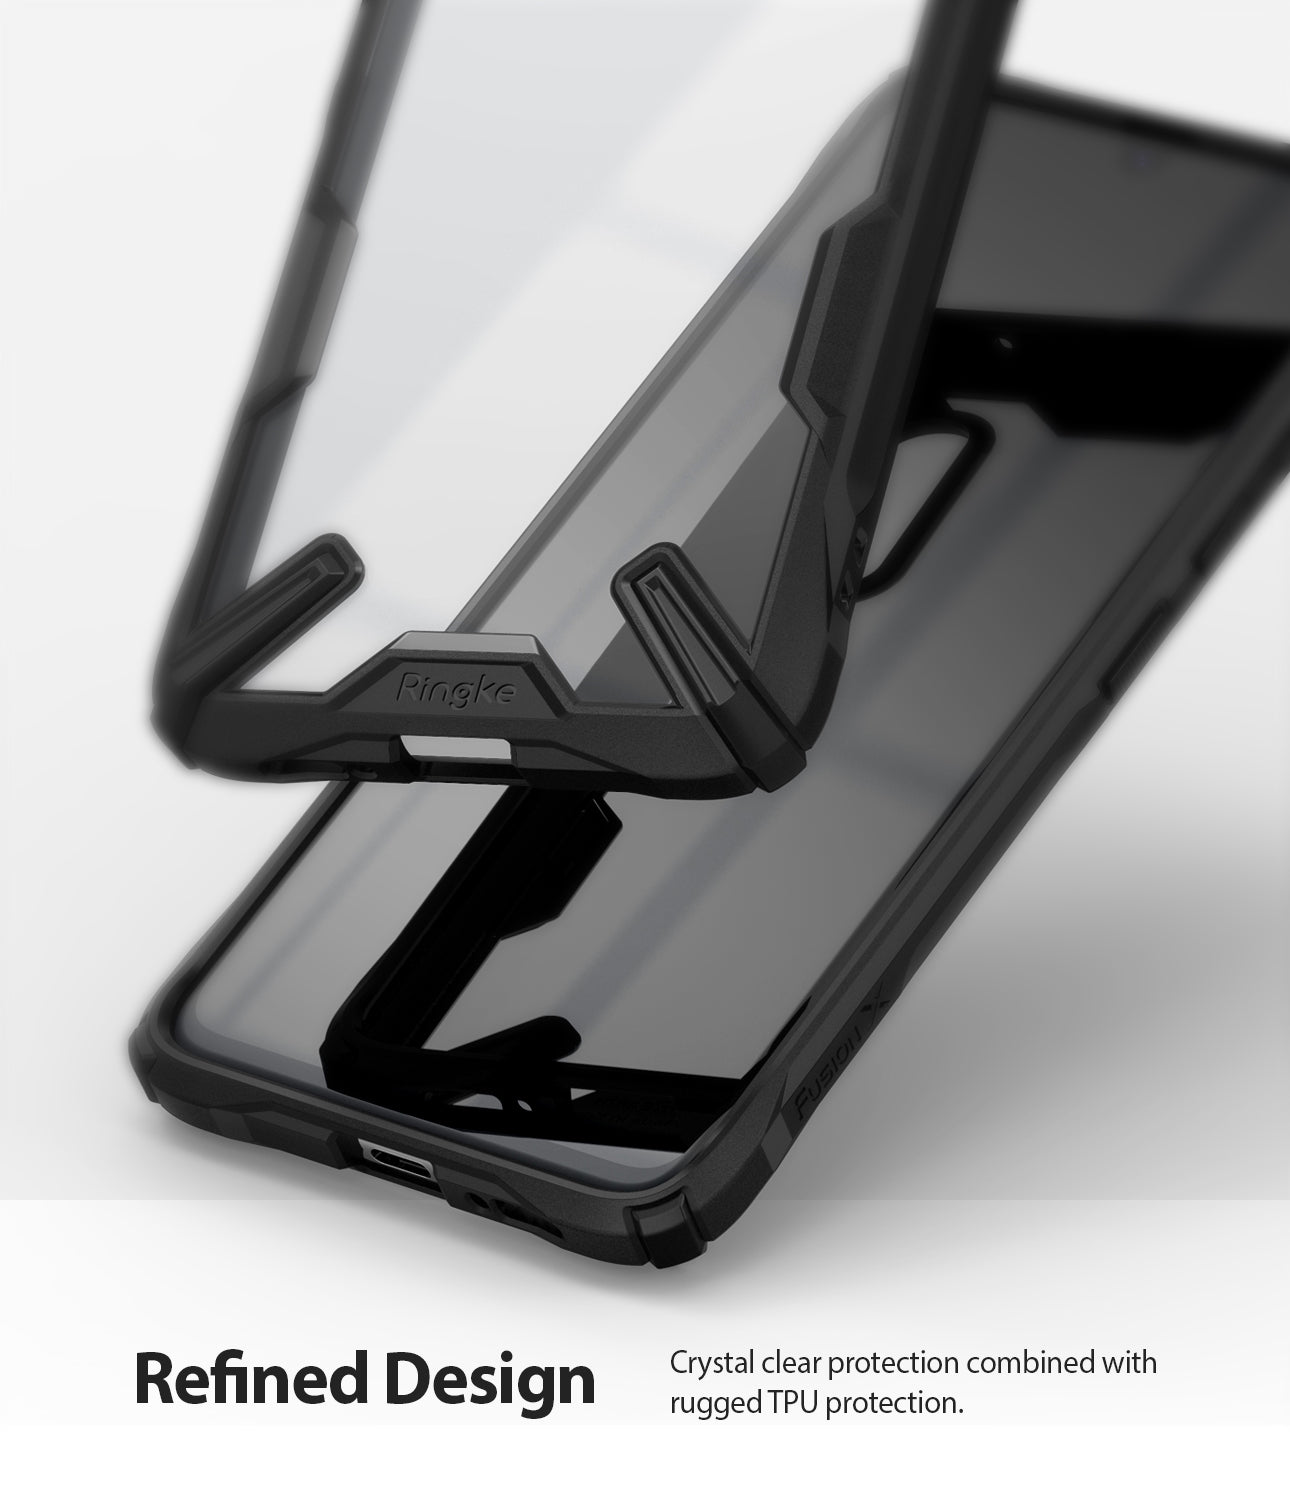 crystal clear protection combined with rugged tpu bumper